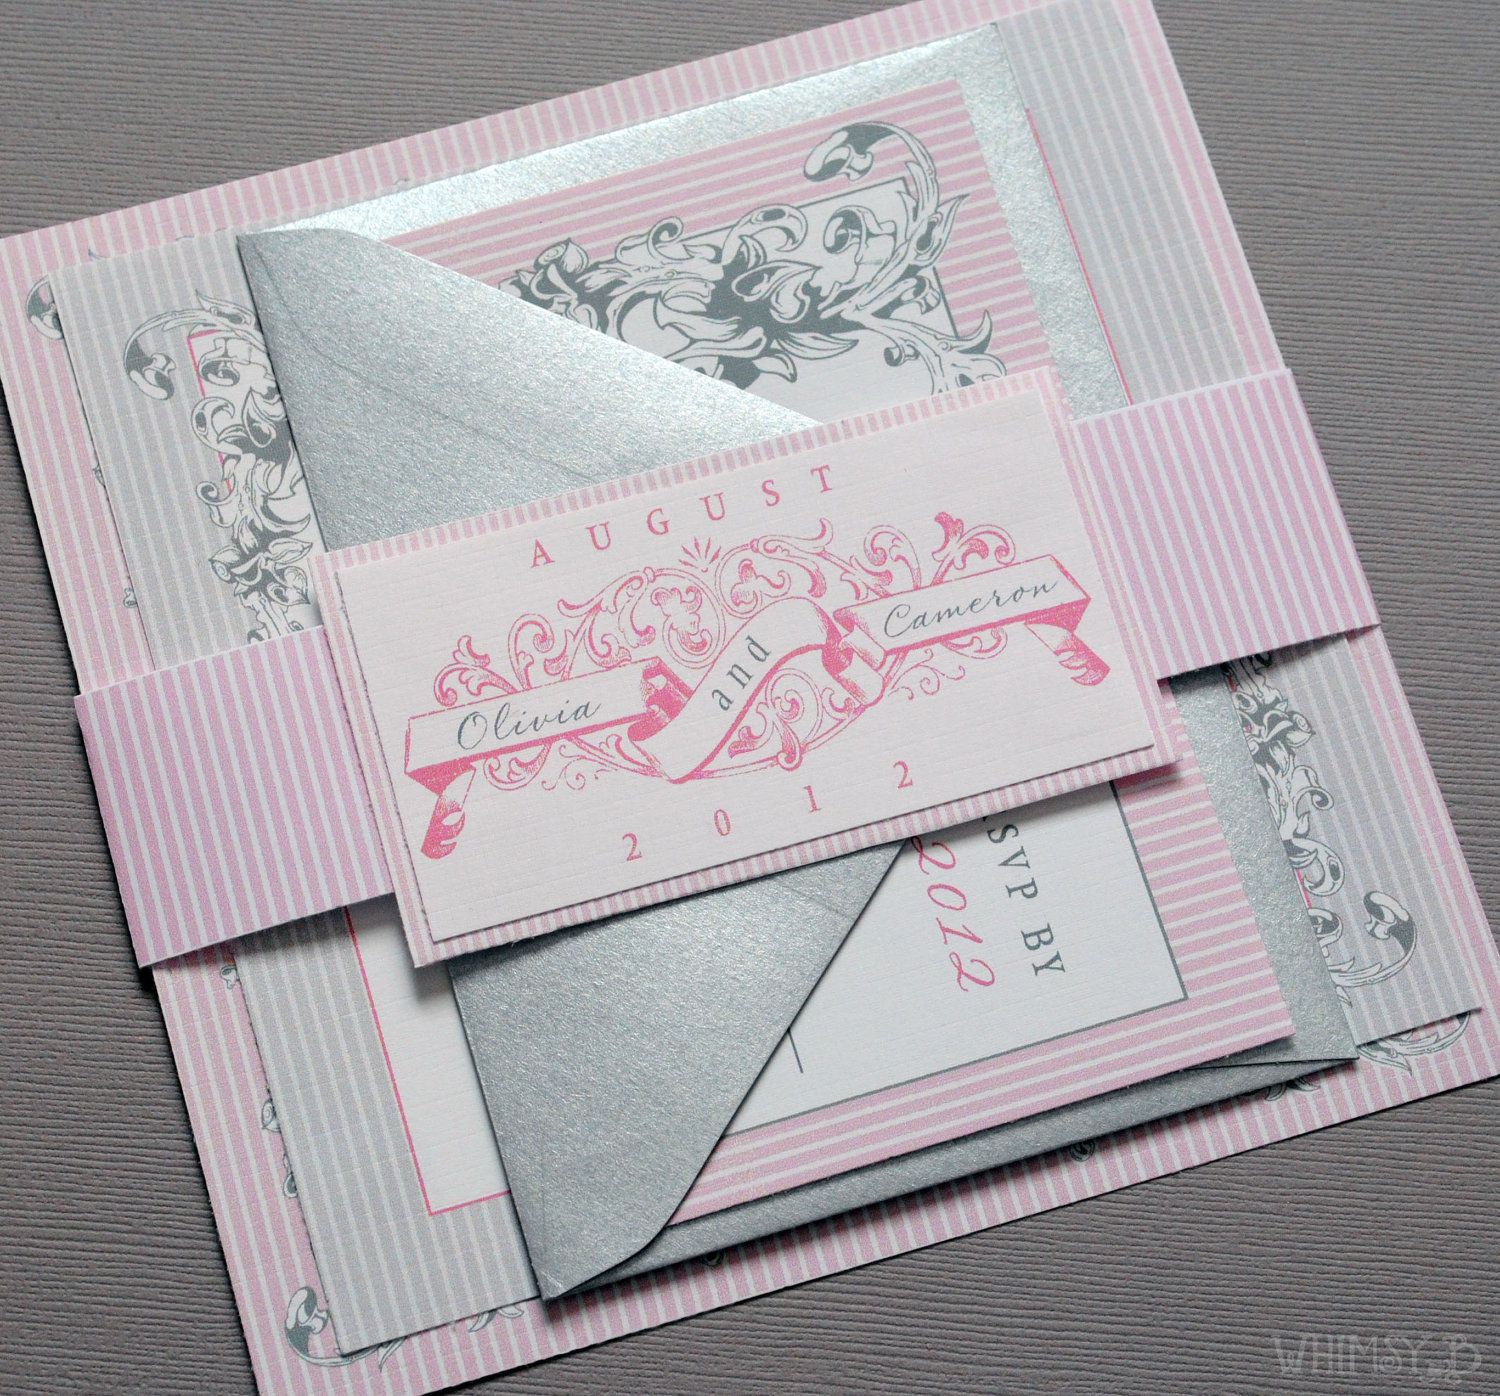 59db2739db5e45738a3ac3fa438a18ef pink vintage wedding invitations wedding suite with belly band,Modern Vintage Invitations